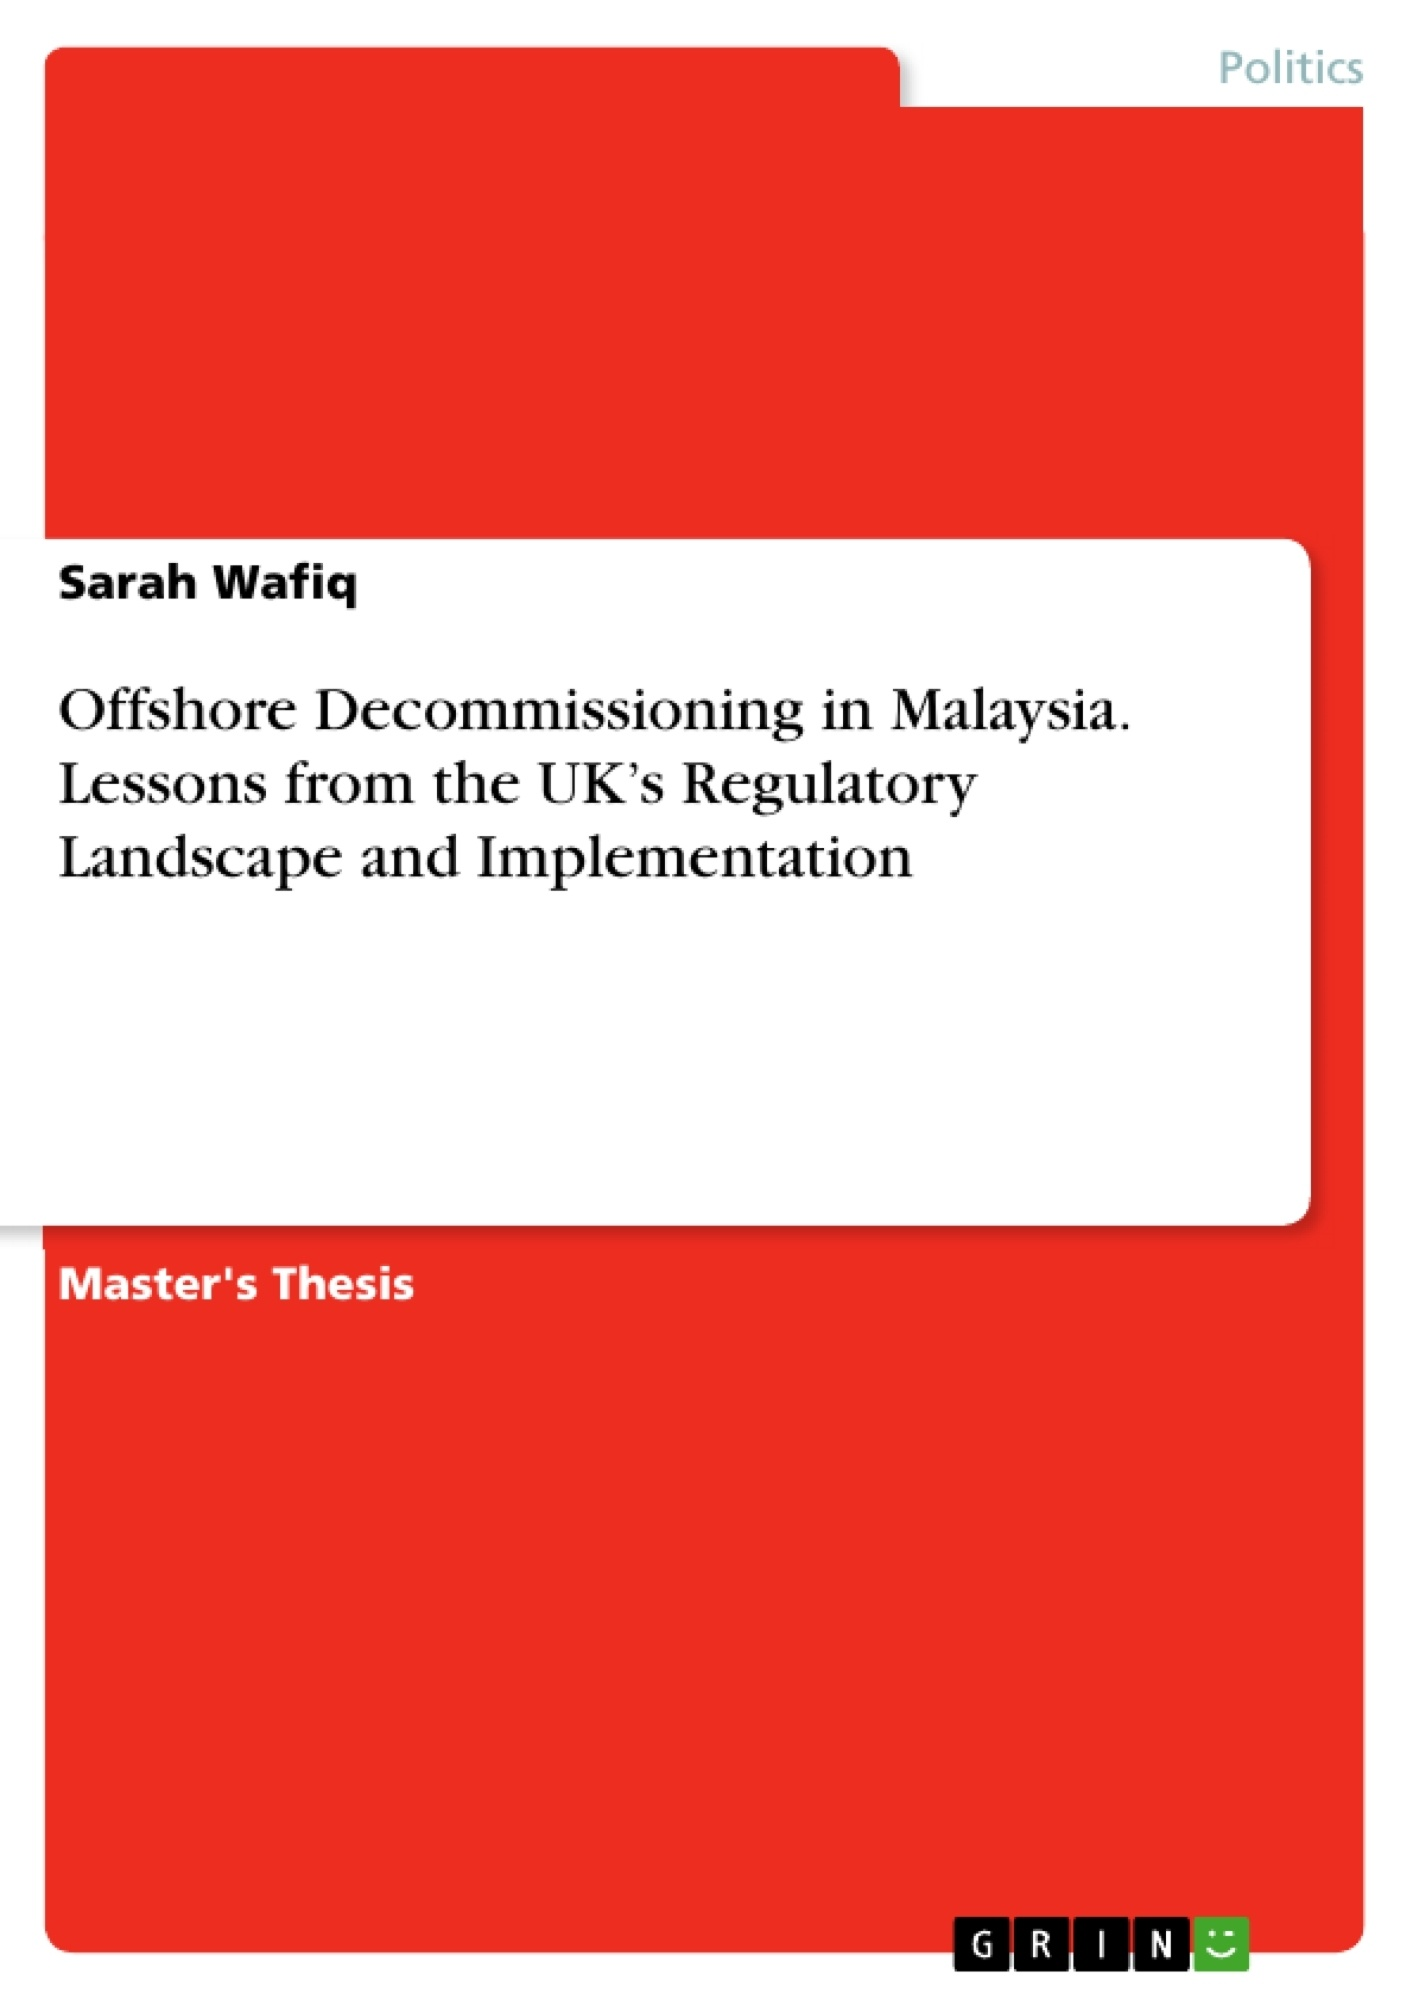 Title: Offshore Decommissioning in Malaysia. Lessons from the UK's Regulatory Landscape and Implementation